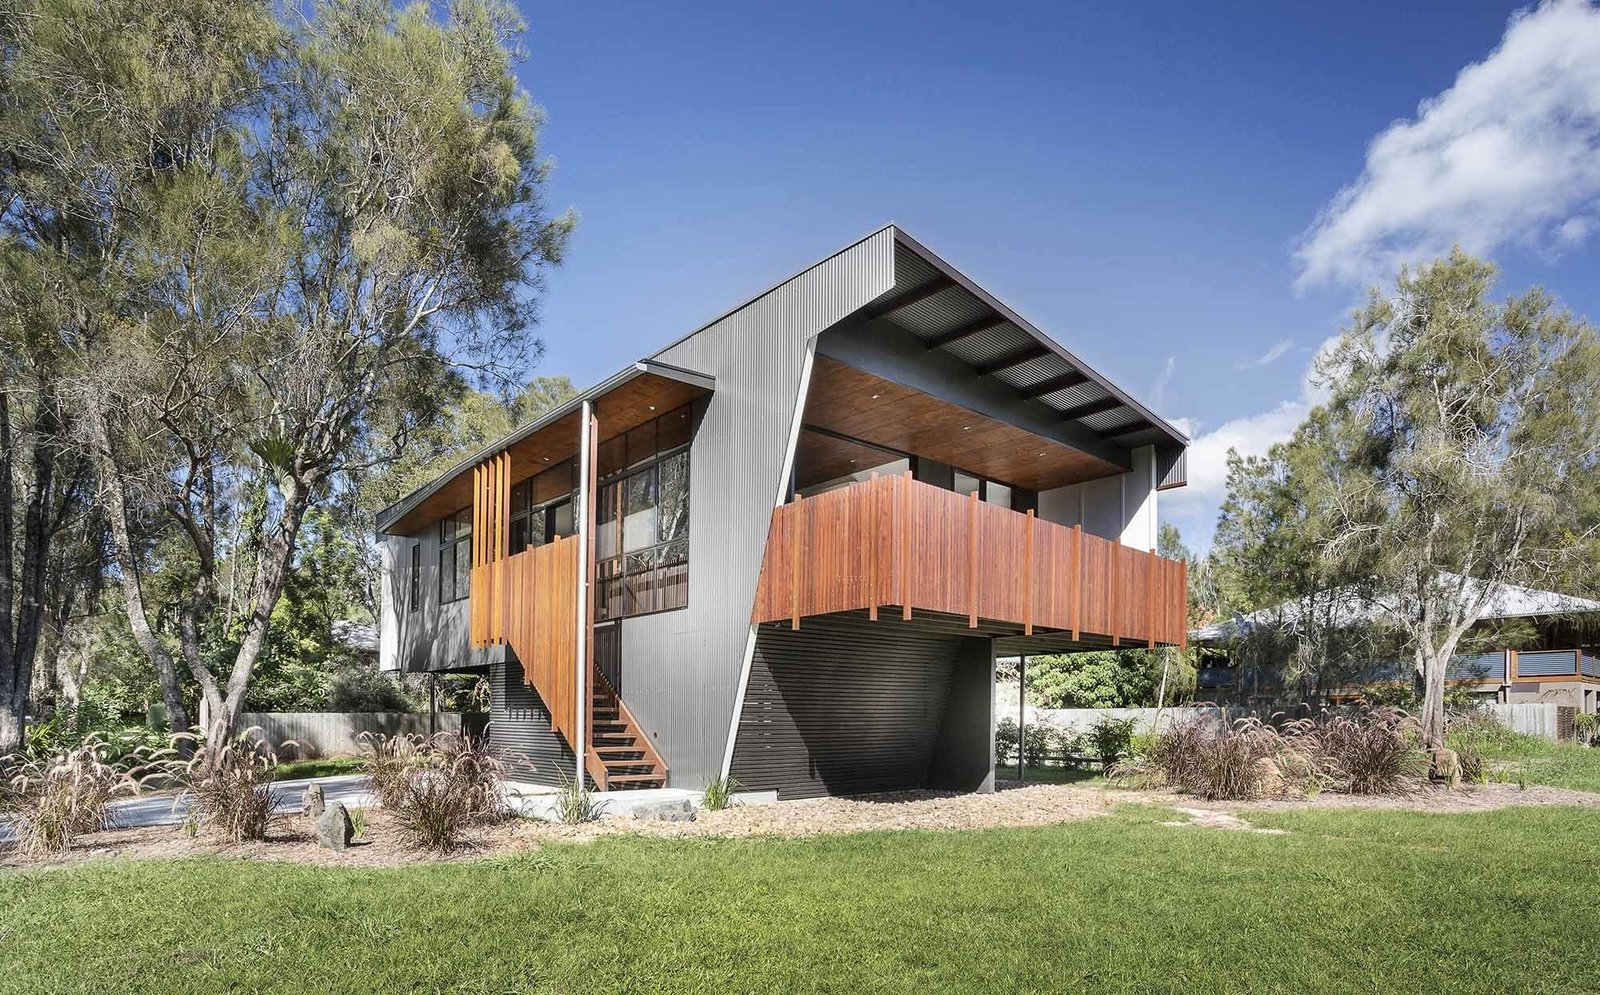 "Outdoor, Back Yard, and Grass The architects' inventive use of resources helped keep costs down. ""We gave the facade's ribbed metal cladding, commonly used in neighboring beach shacks, a metallic finish that provided a cost-effective solution and an upscale appearance,"" Rathmayr says.  Northern Rivers Beach House by Tiffany Jow"